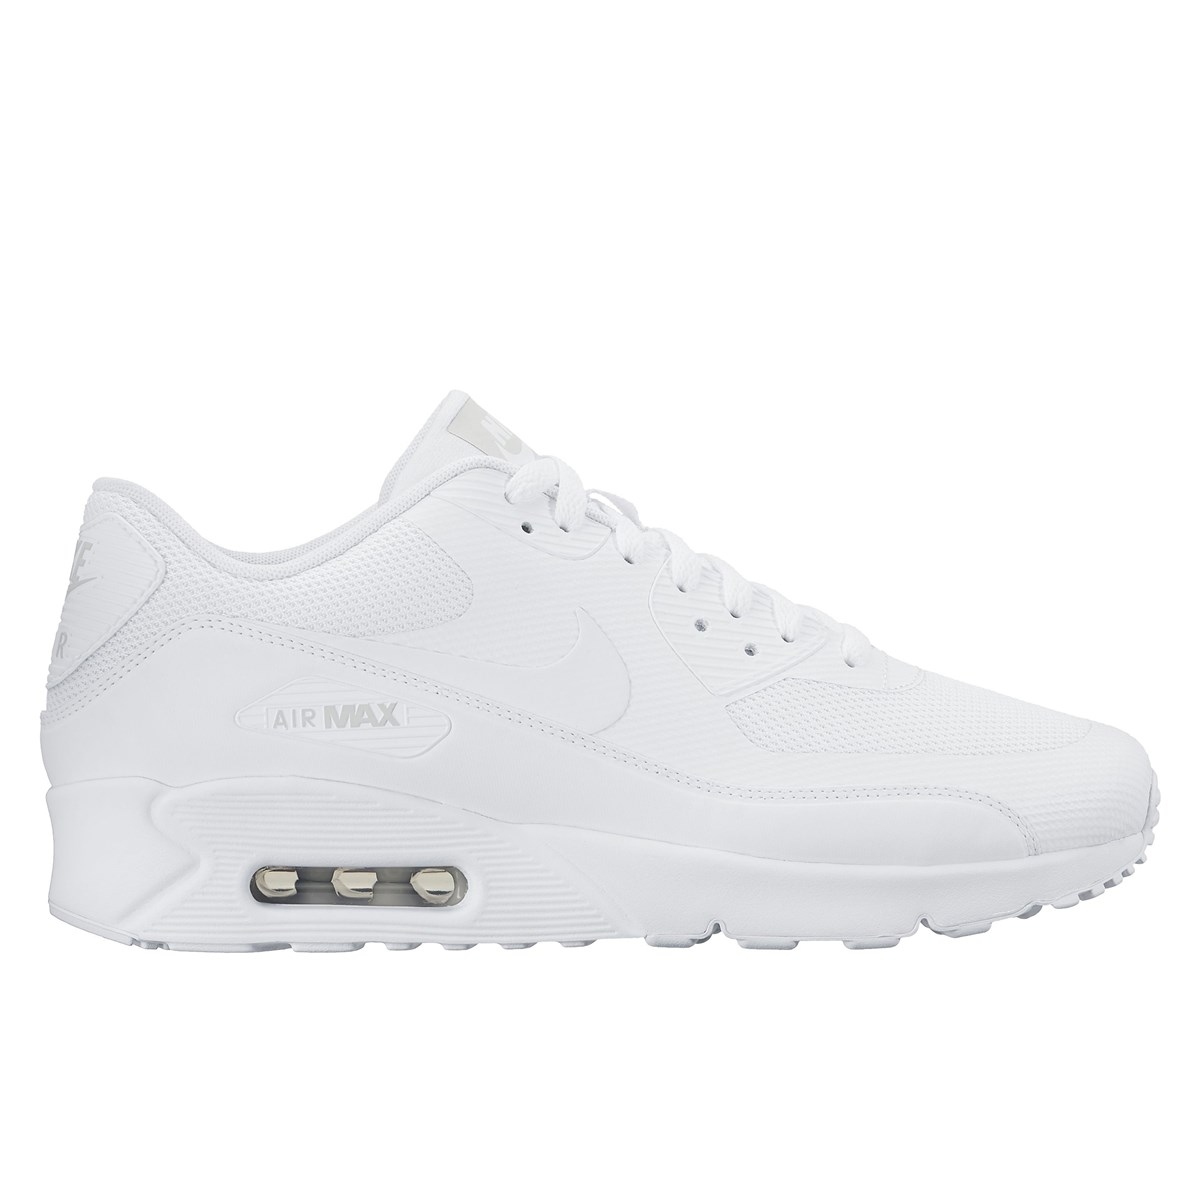 finest selection bd39f 94f3f Men's Air Max 90 Ultra 2.0 White Sneaker